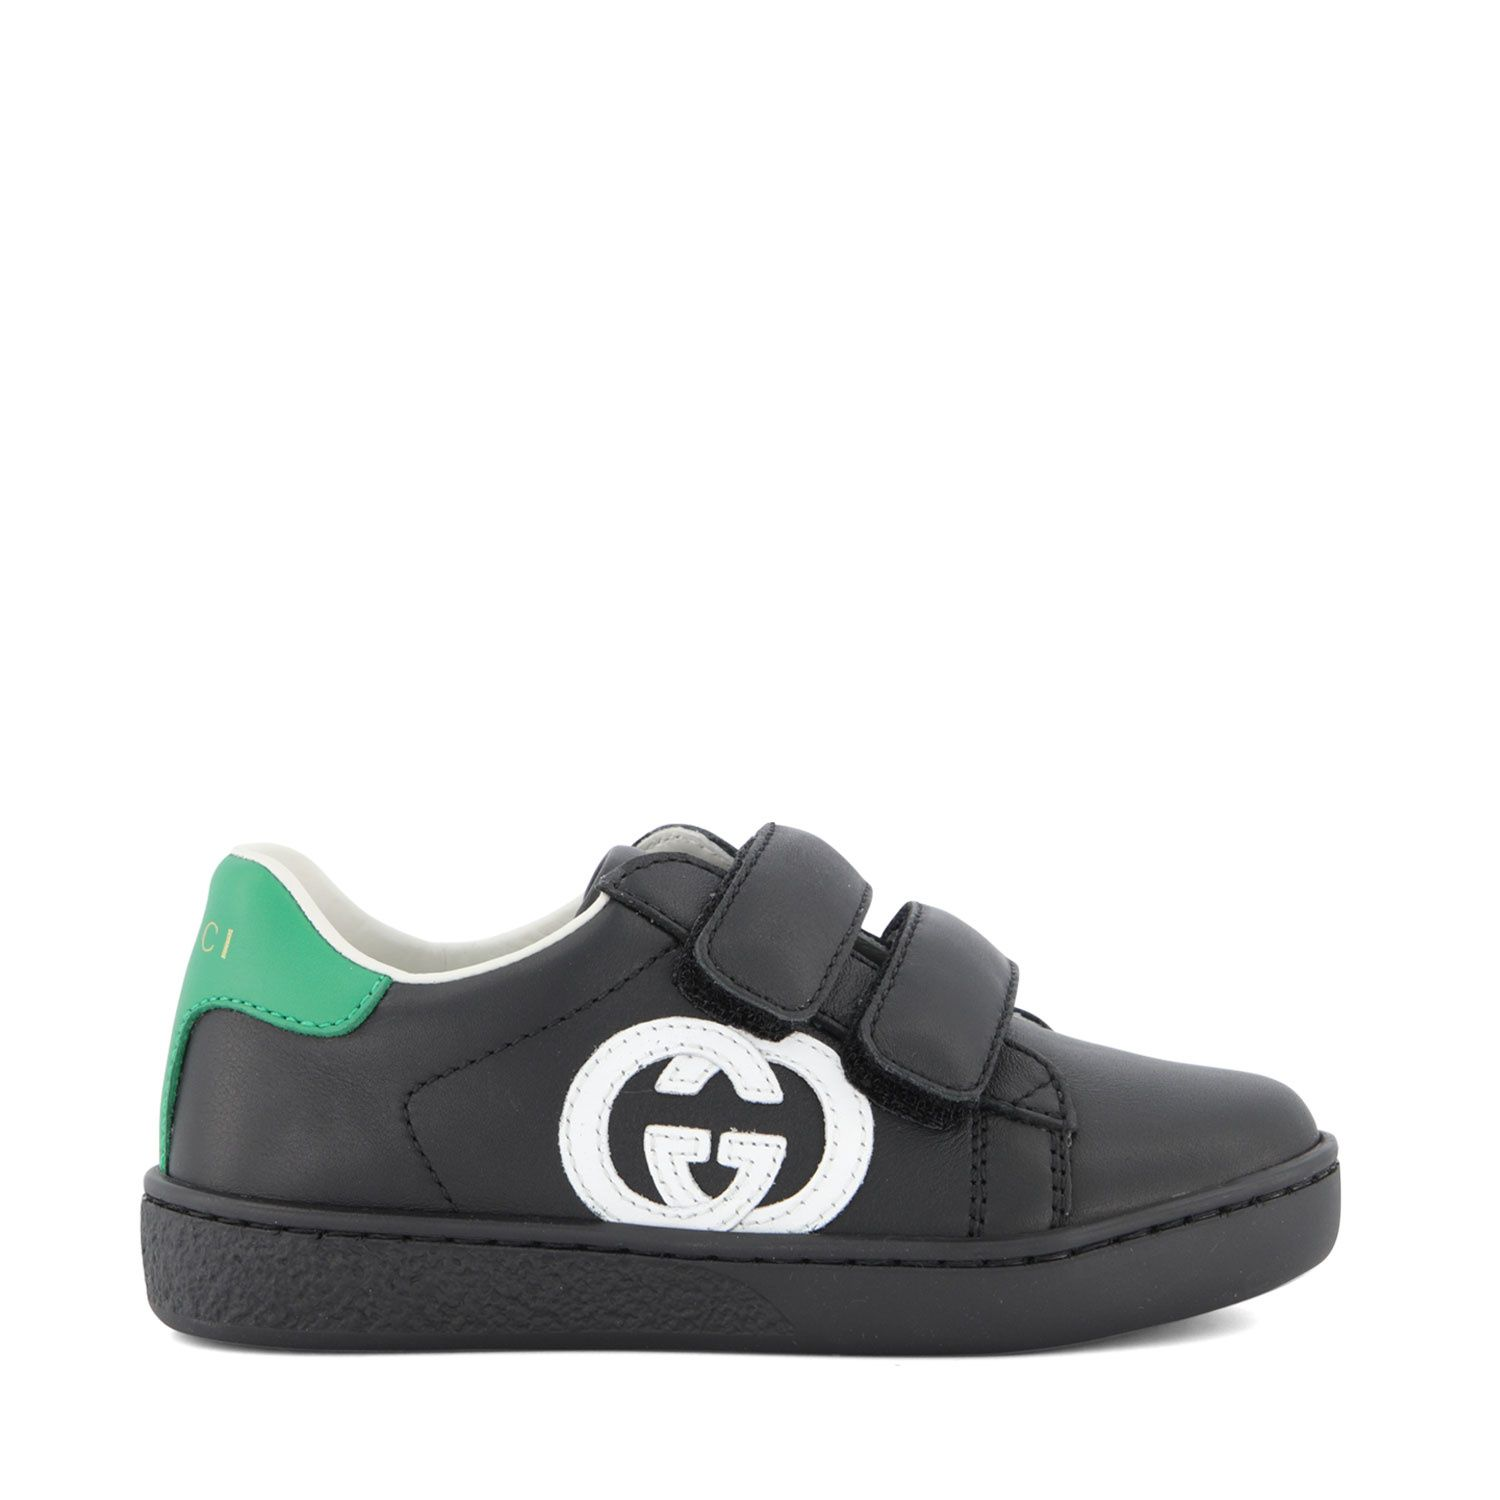 Picture of Gucci 647072 kids sneakers black